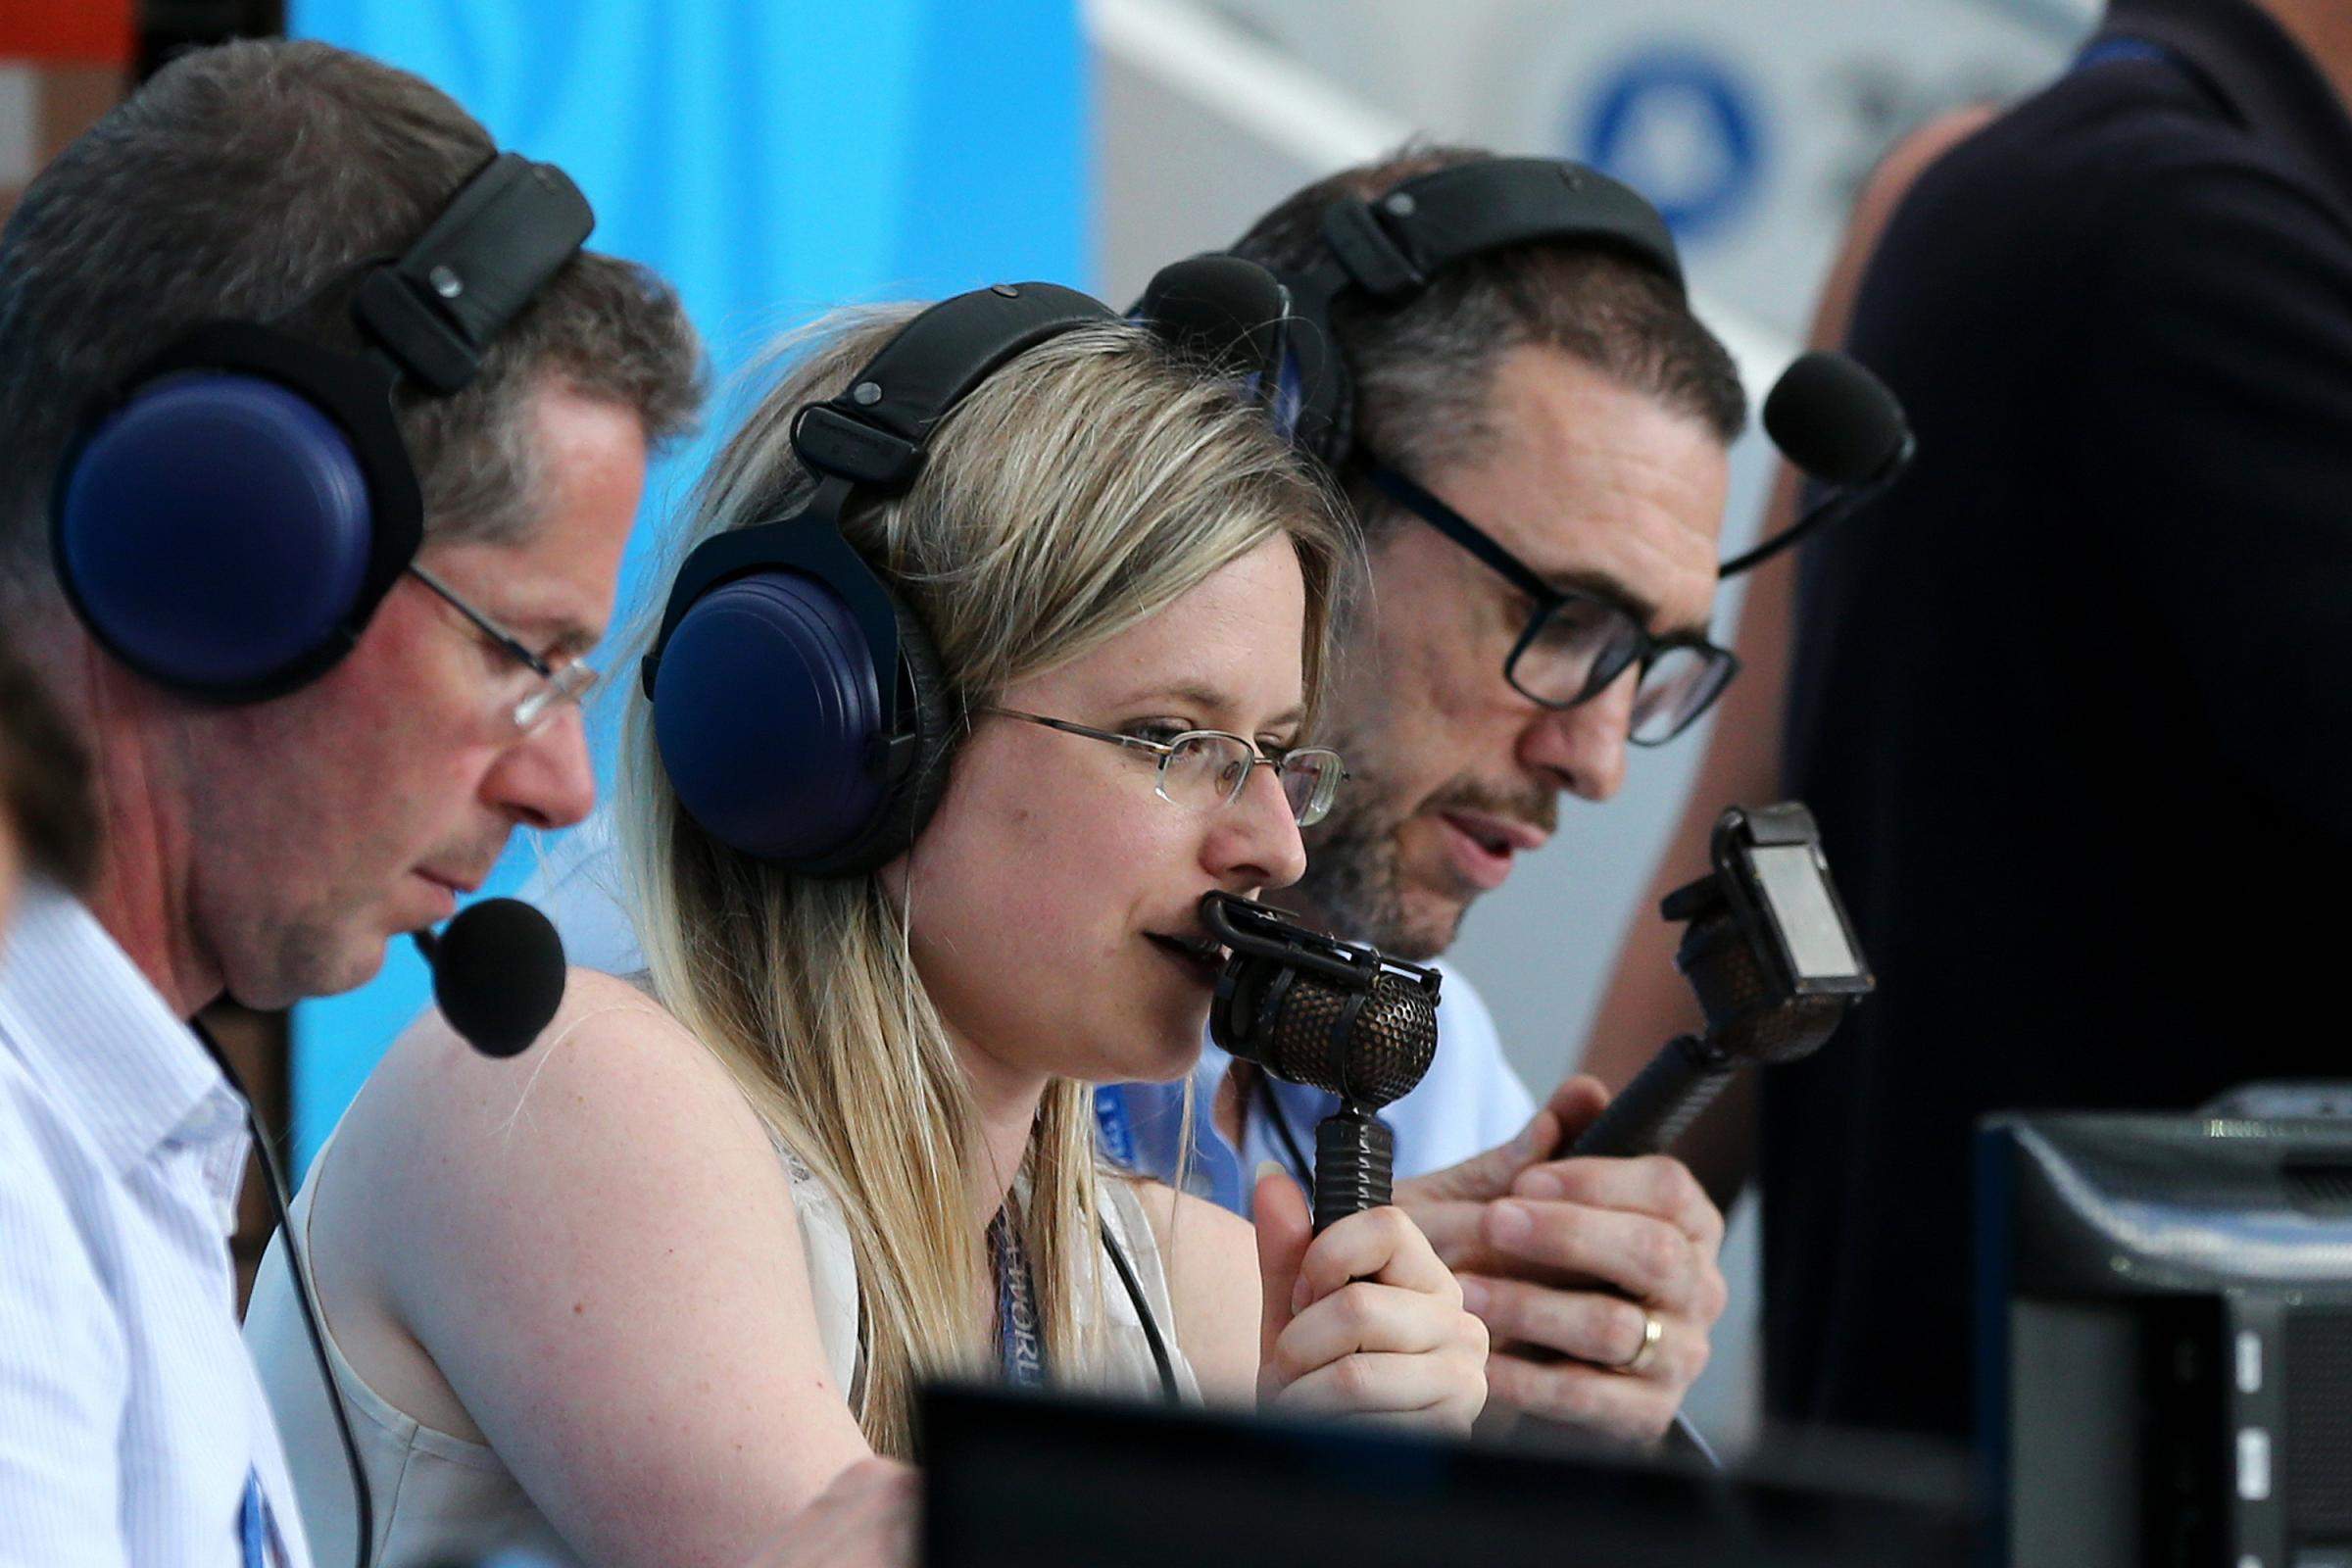 Vicki Sparks commentates for BBC during the World Cup